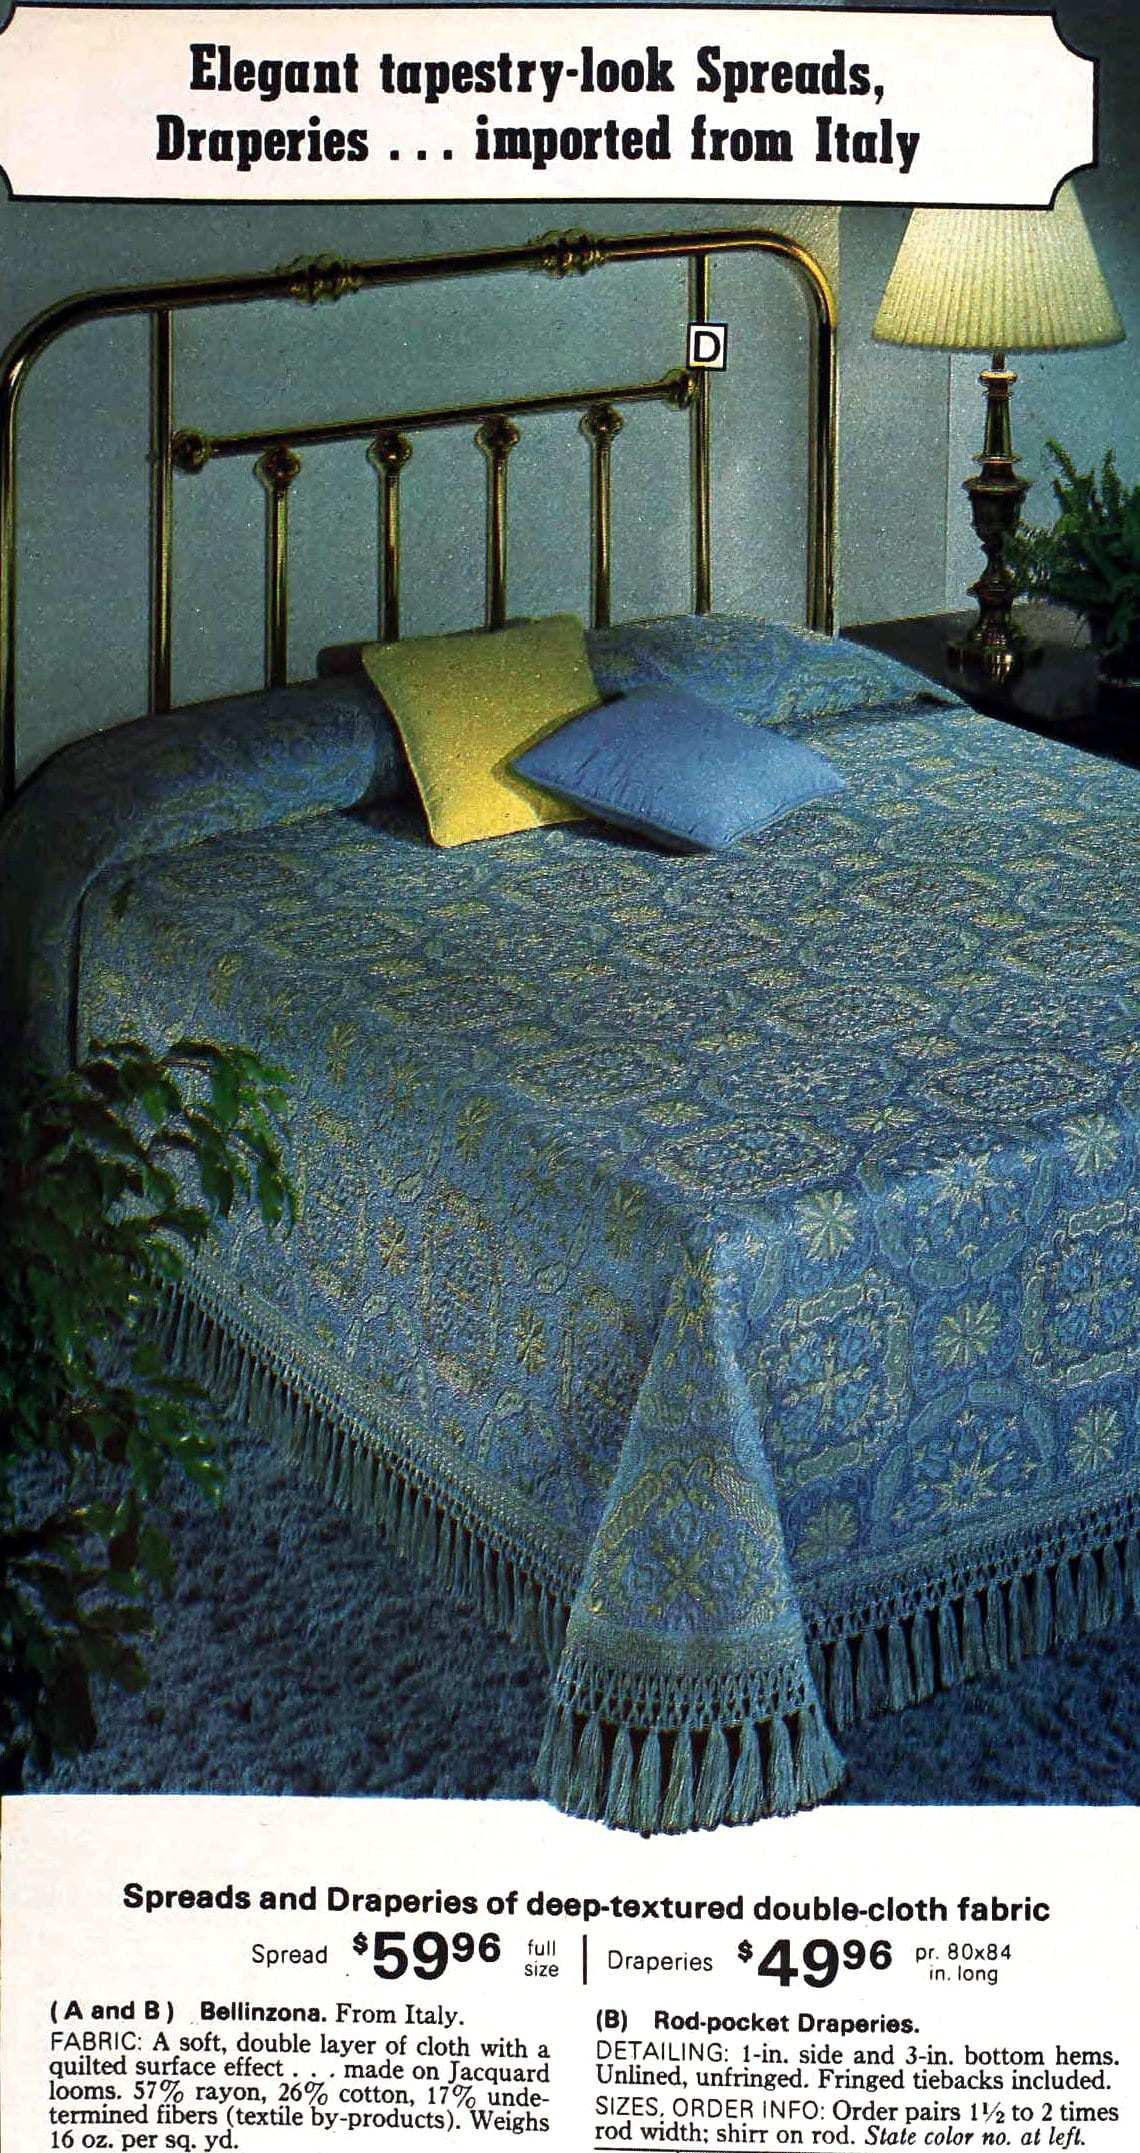 Elegant tapestry-look spreads from the 1970s